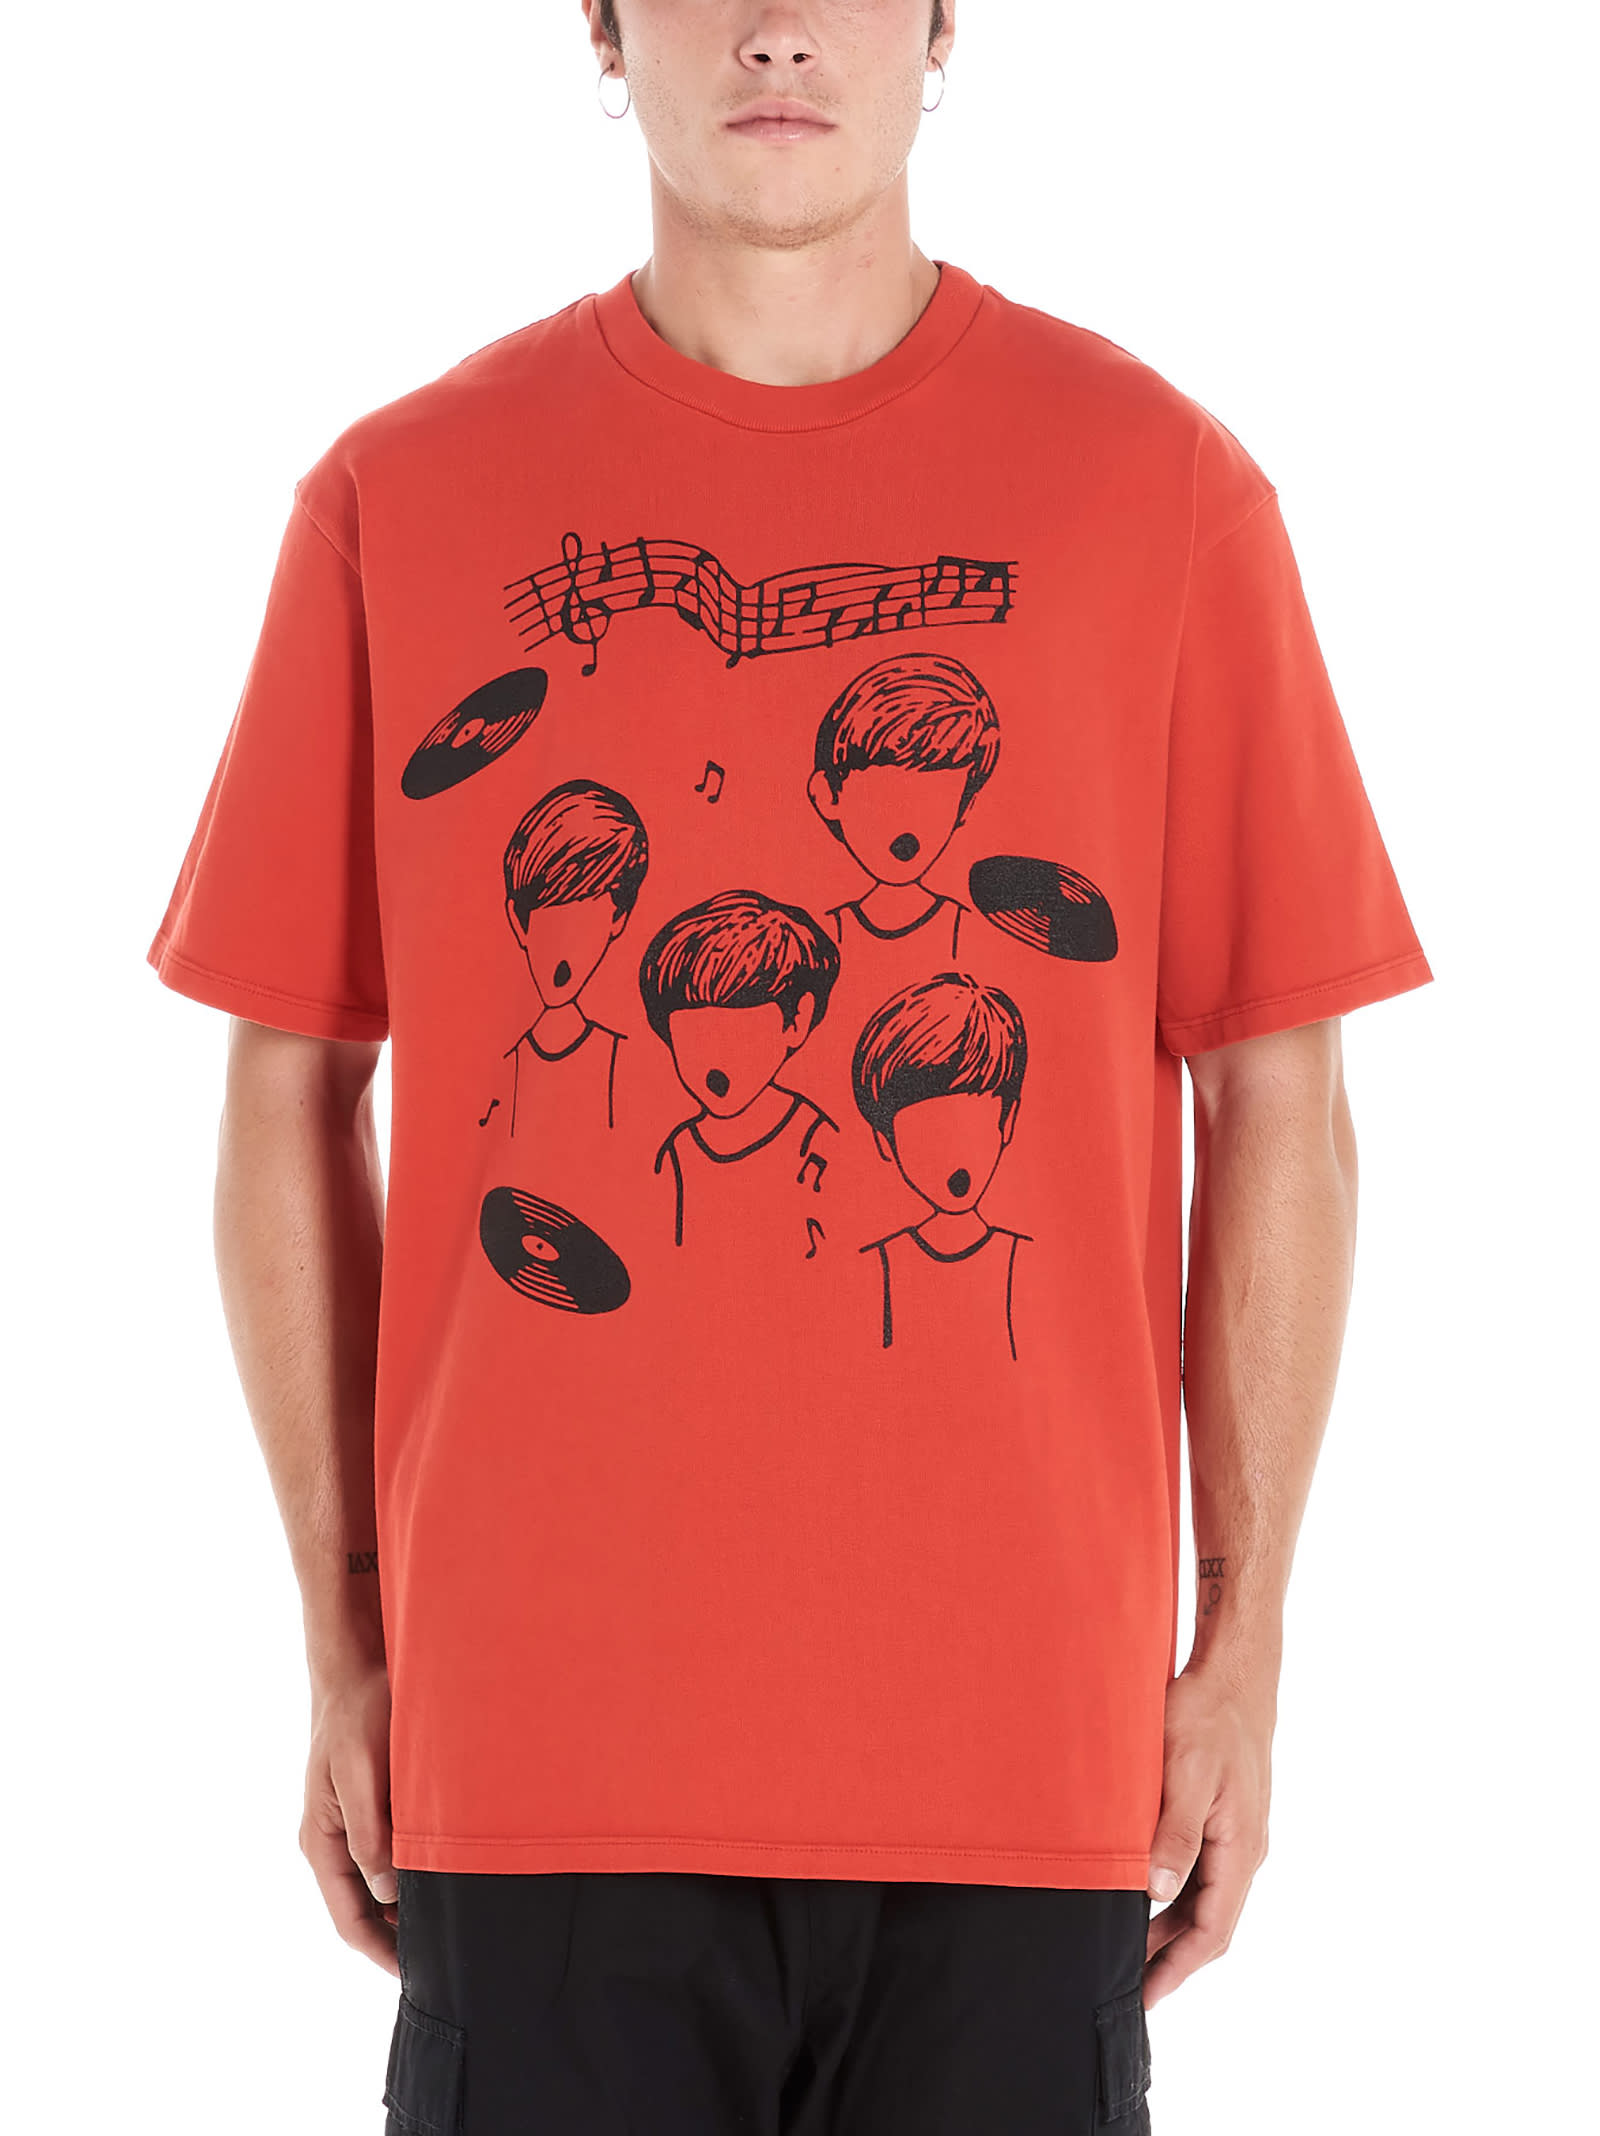 the Sound Band T-shirt